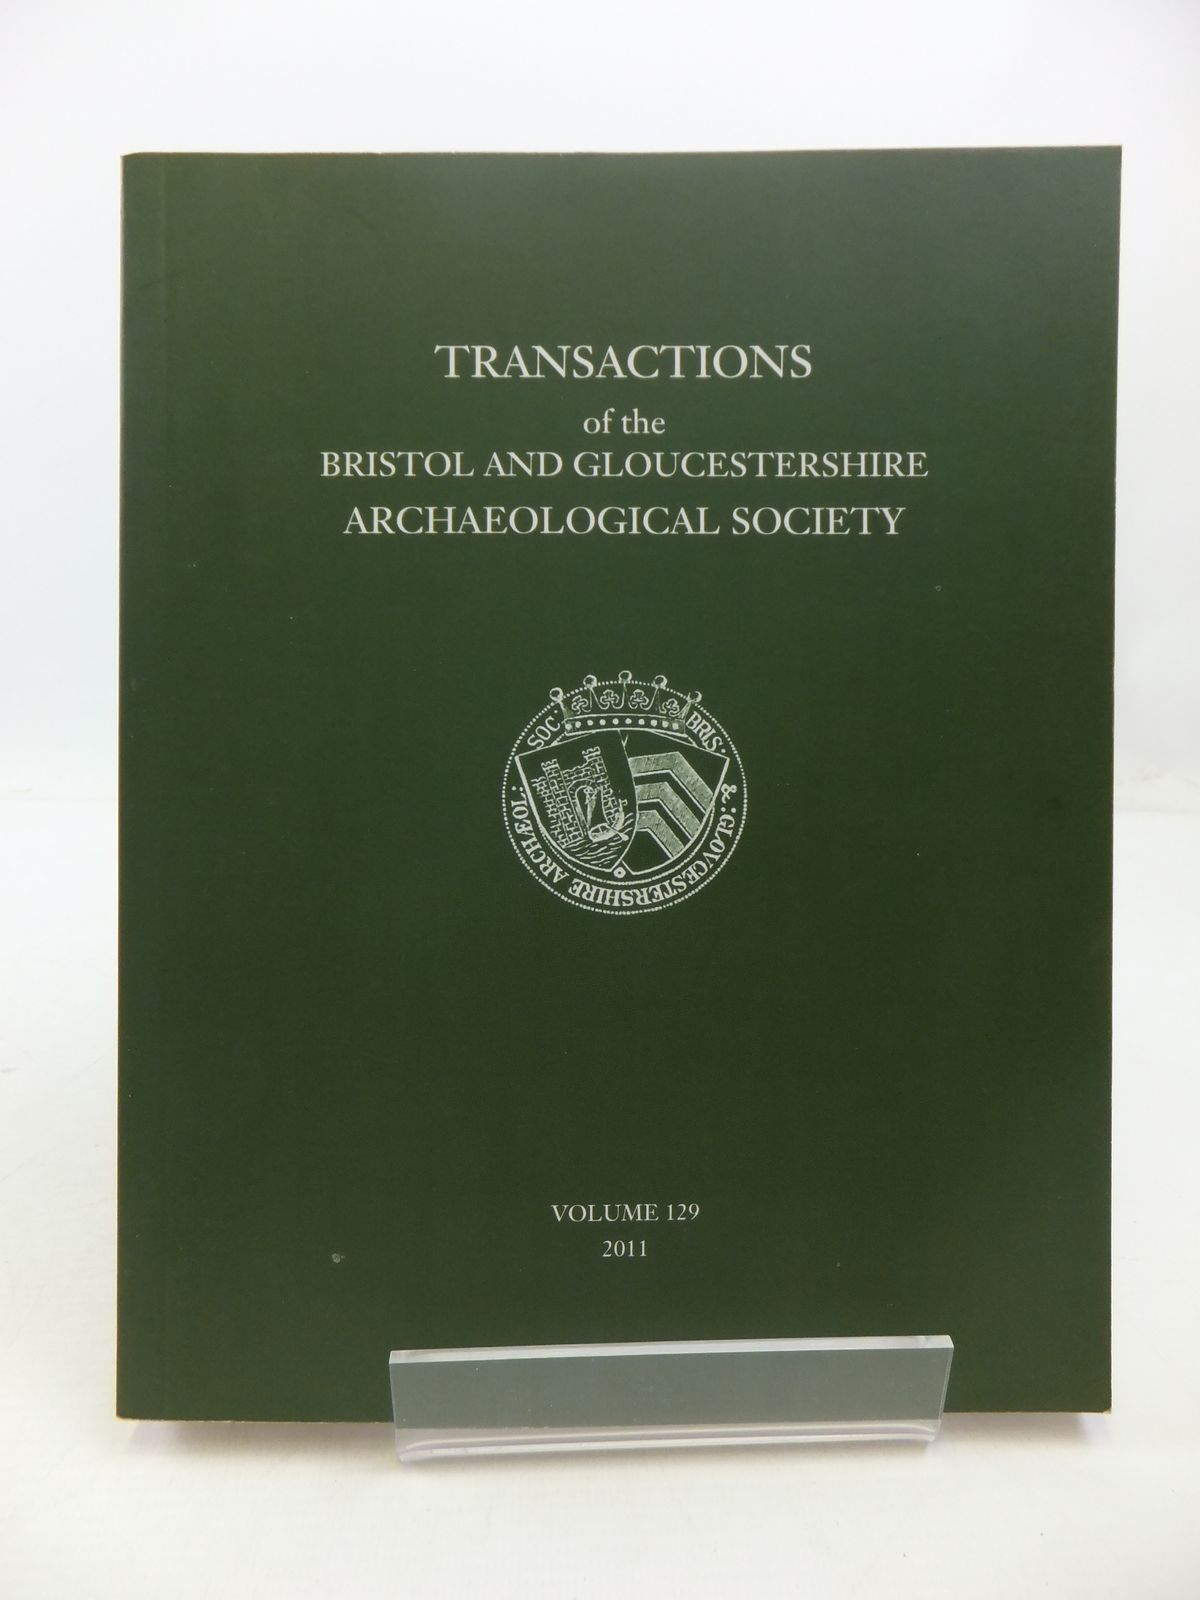 Photo of TRANSACTIONS OF THE BRISTOL AND GLOUCESTERSHIRE ARCHAEOLOGICAL SOCIETY FOR 2011 VOLUME 129